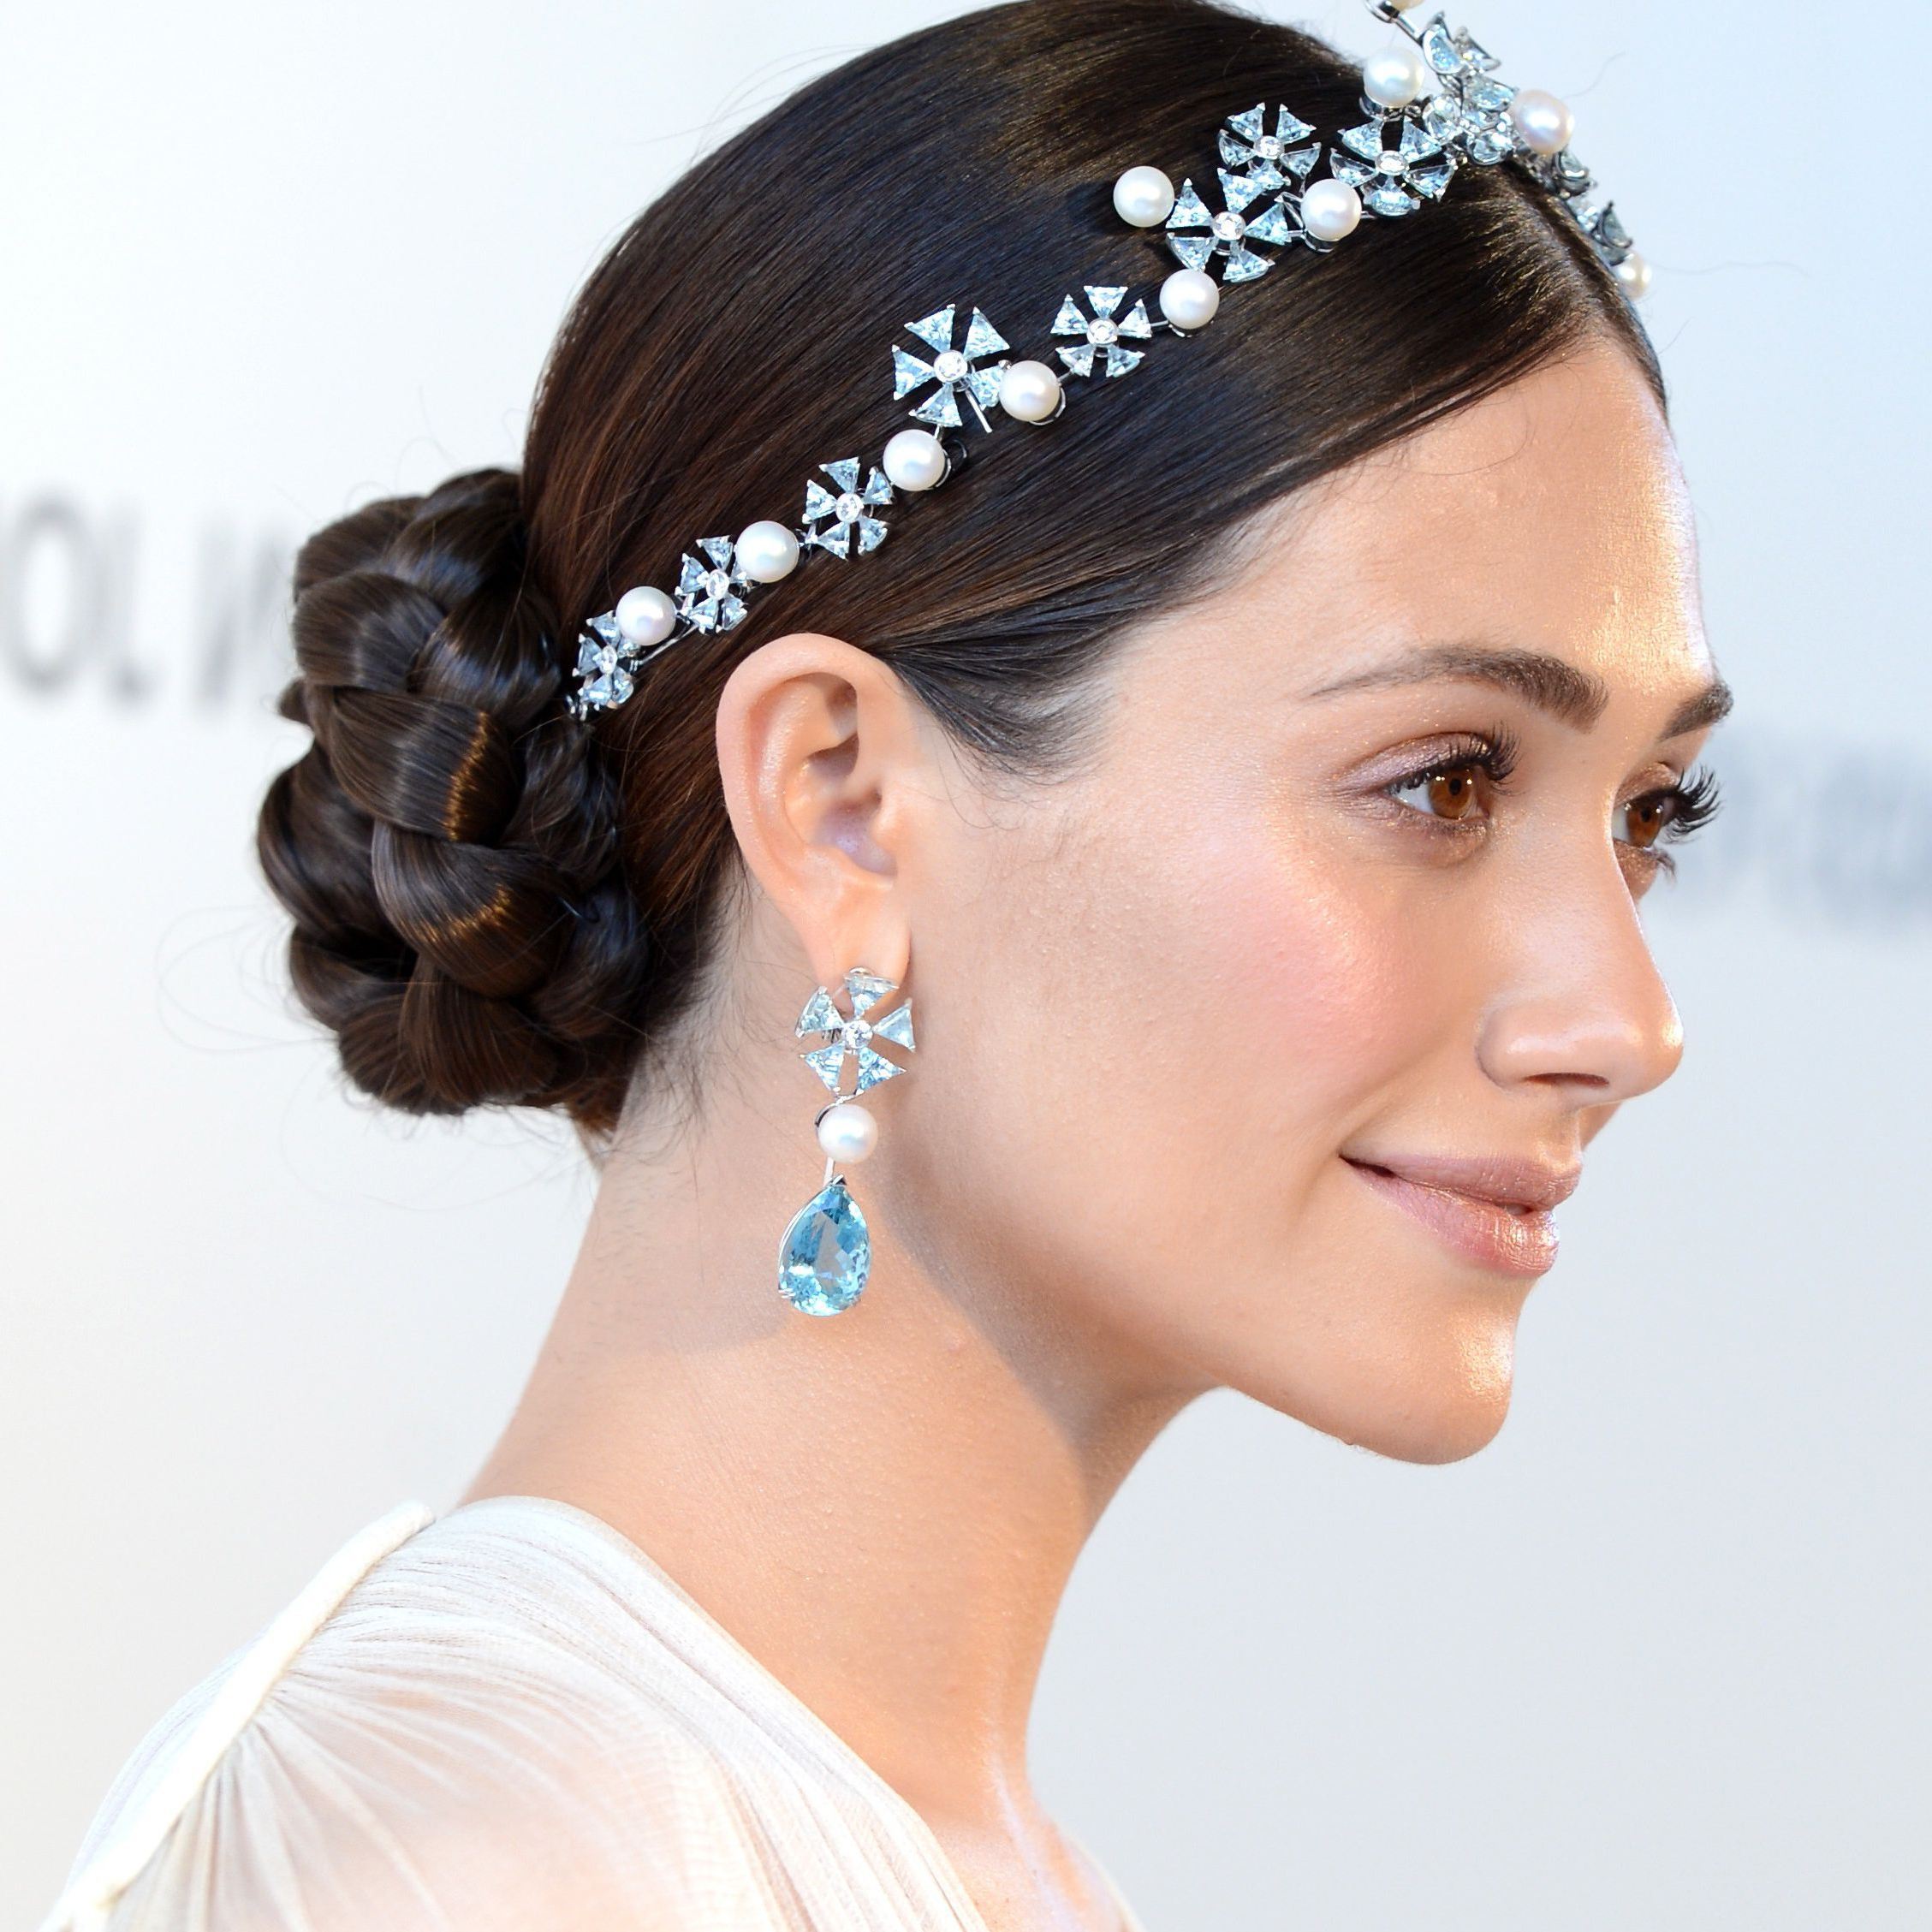 2019 Blinged Out Bun Updo Hairstyles Throughout How To Accessorize Your Prom Hairstyle (View 1 of 20)